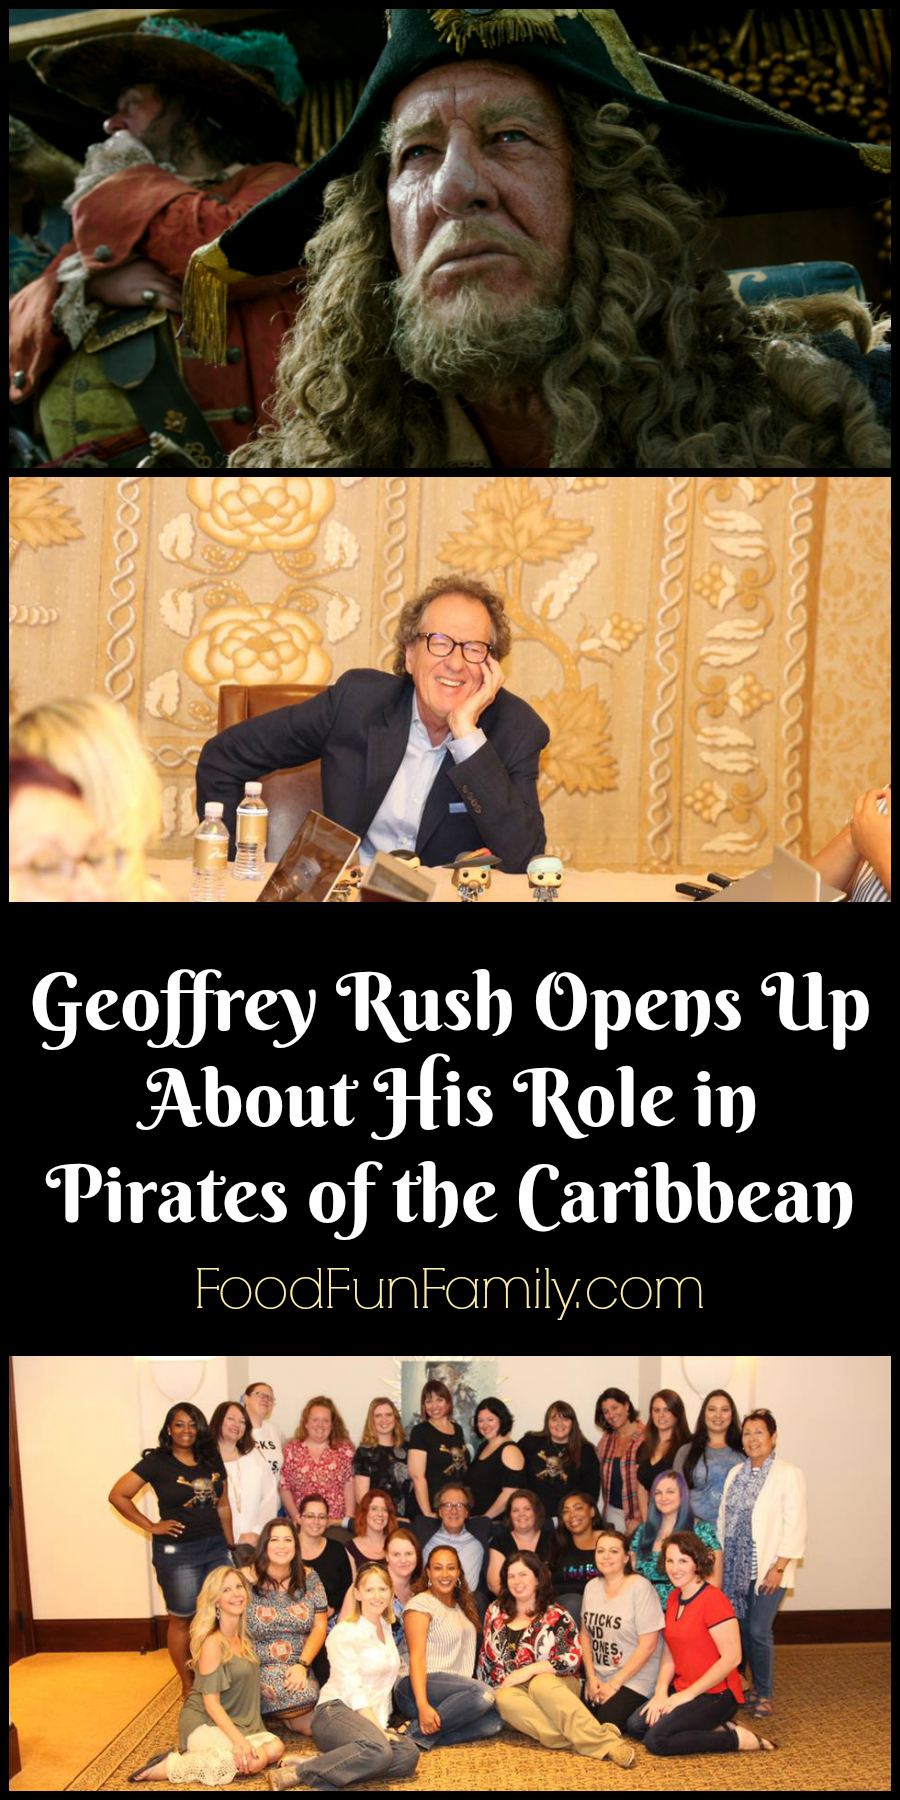 Geoffrey Rush Opens Up About His Role in Pirates of the Caribbean